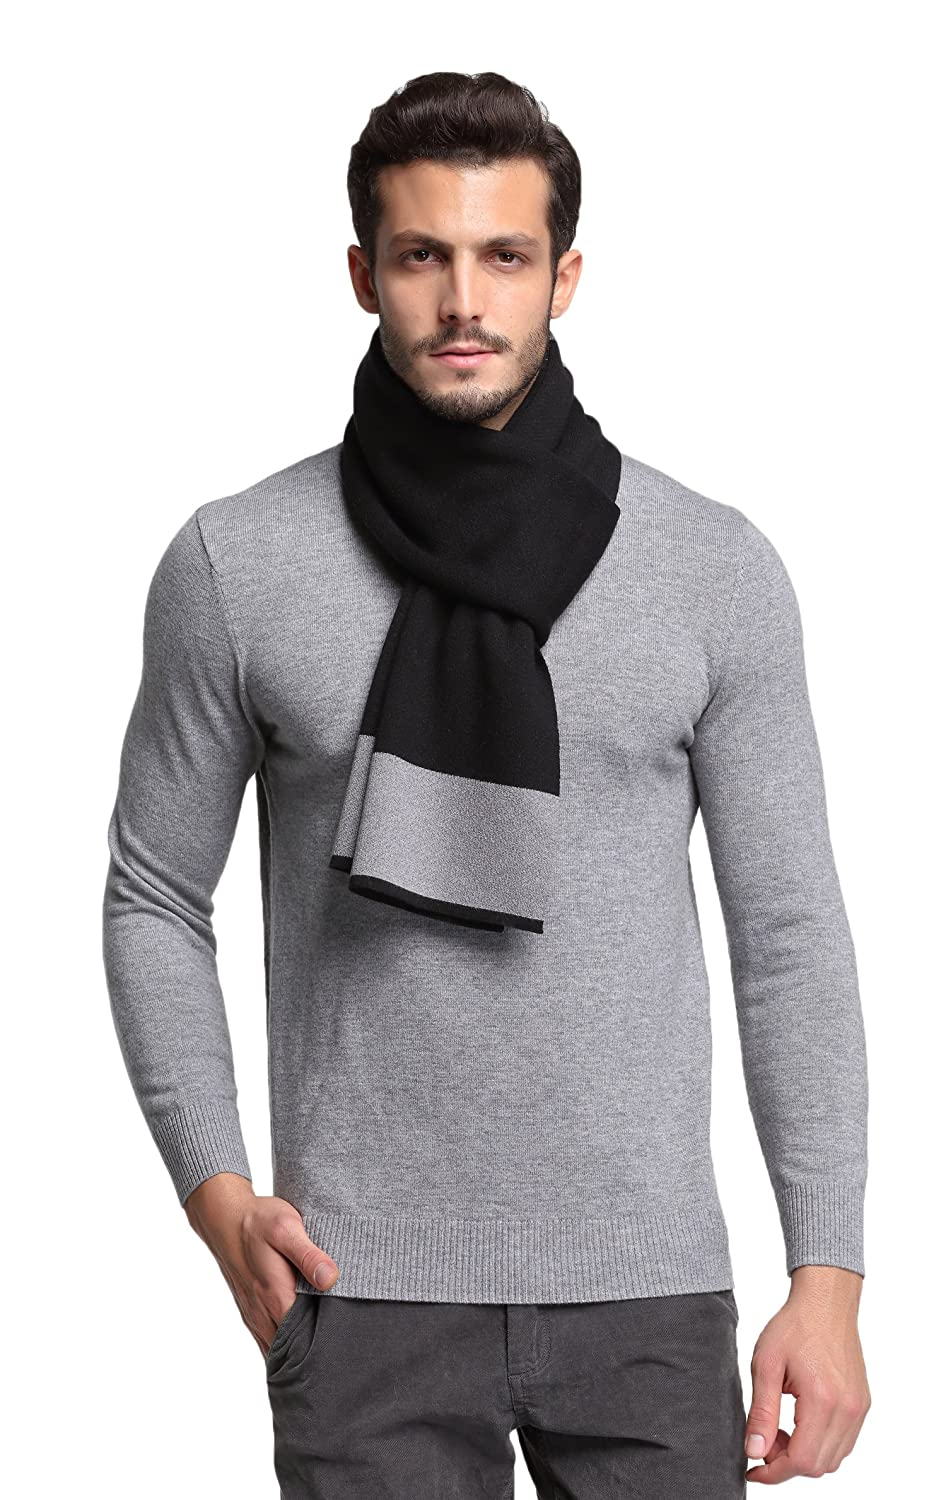 RIONA Men's Winter Warm Australian Wool Cashmere Soft Knitted Gentleman Scarf (Black) RIW8134Black